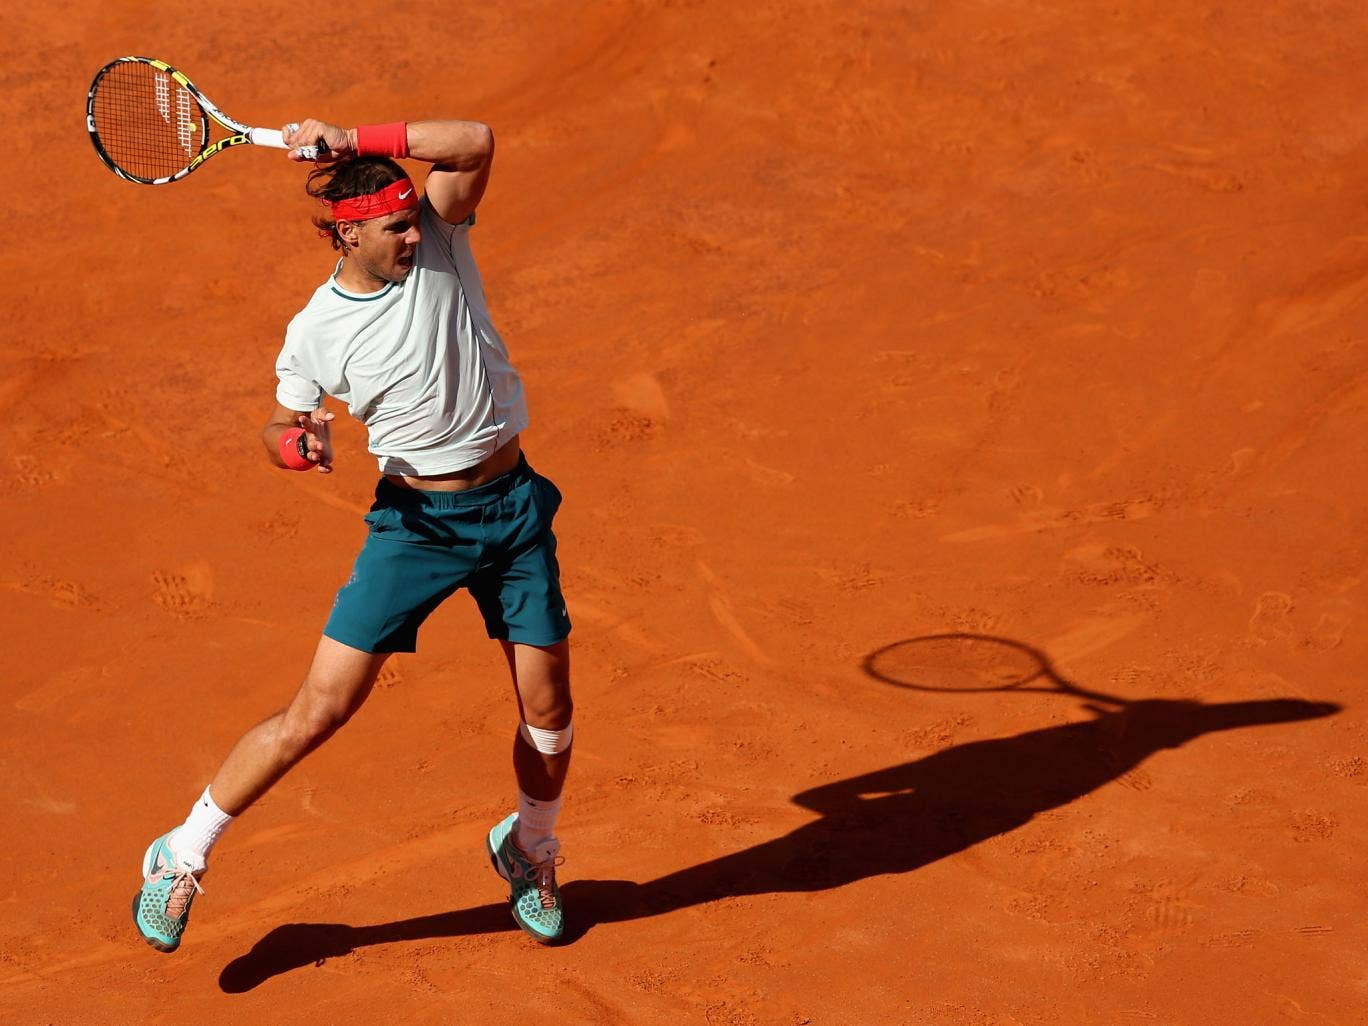 Rafael Nadal: 'Poker is like tennis. You can't play crazy because you'll make mistakes'